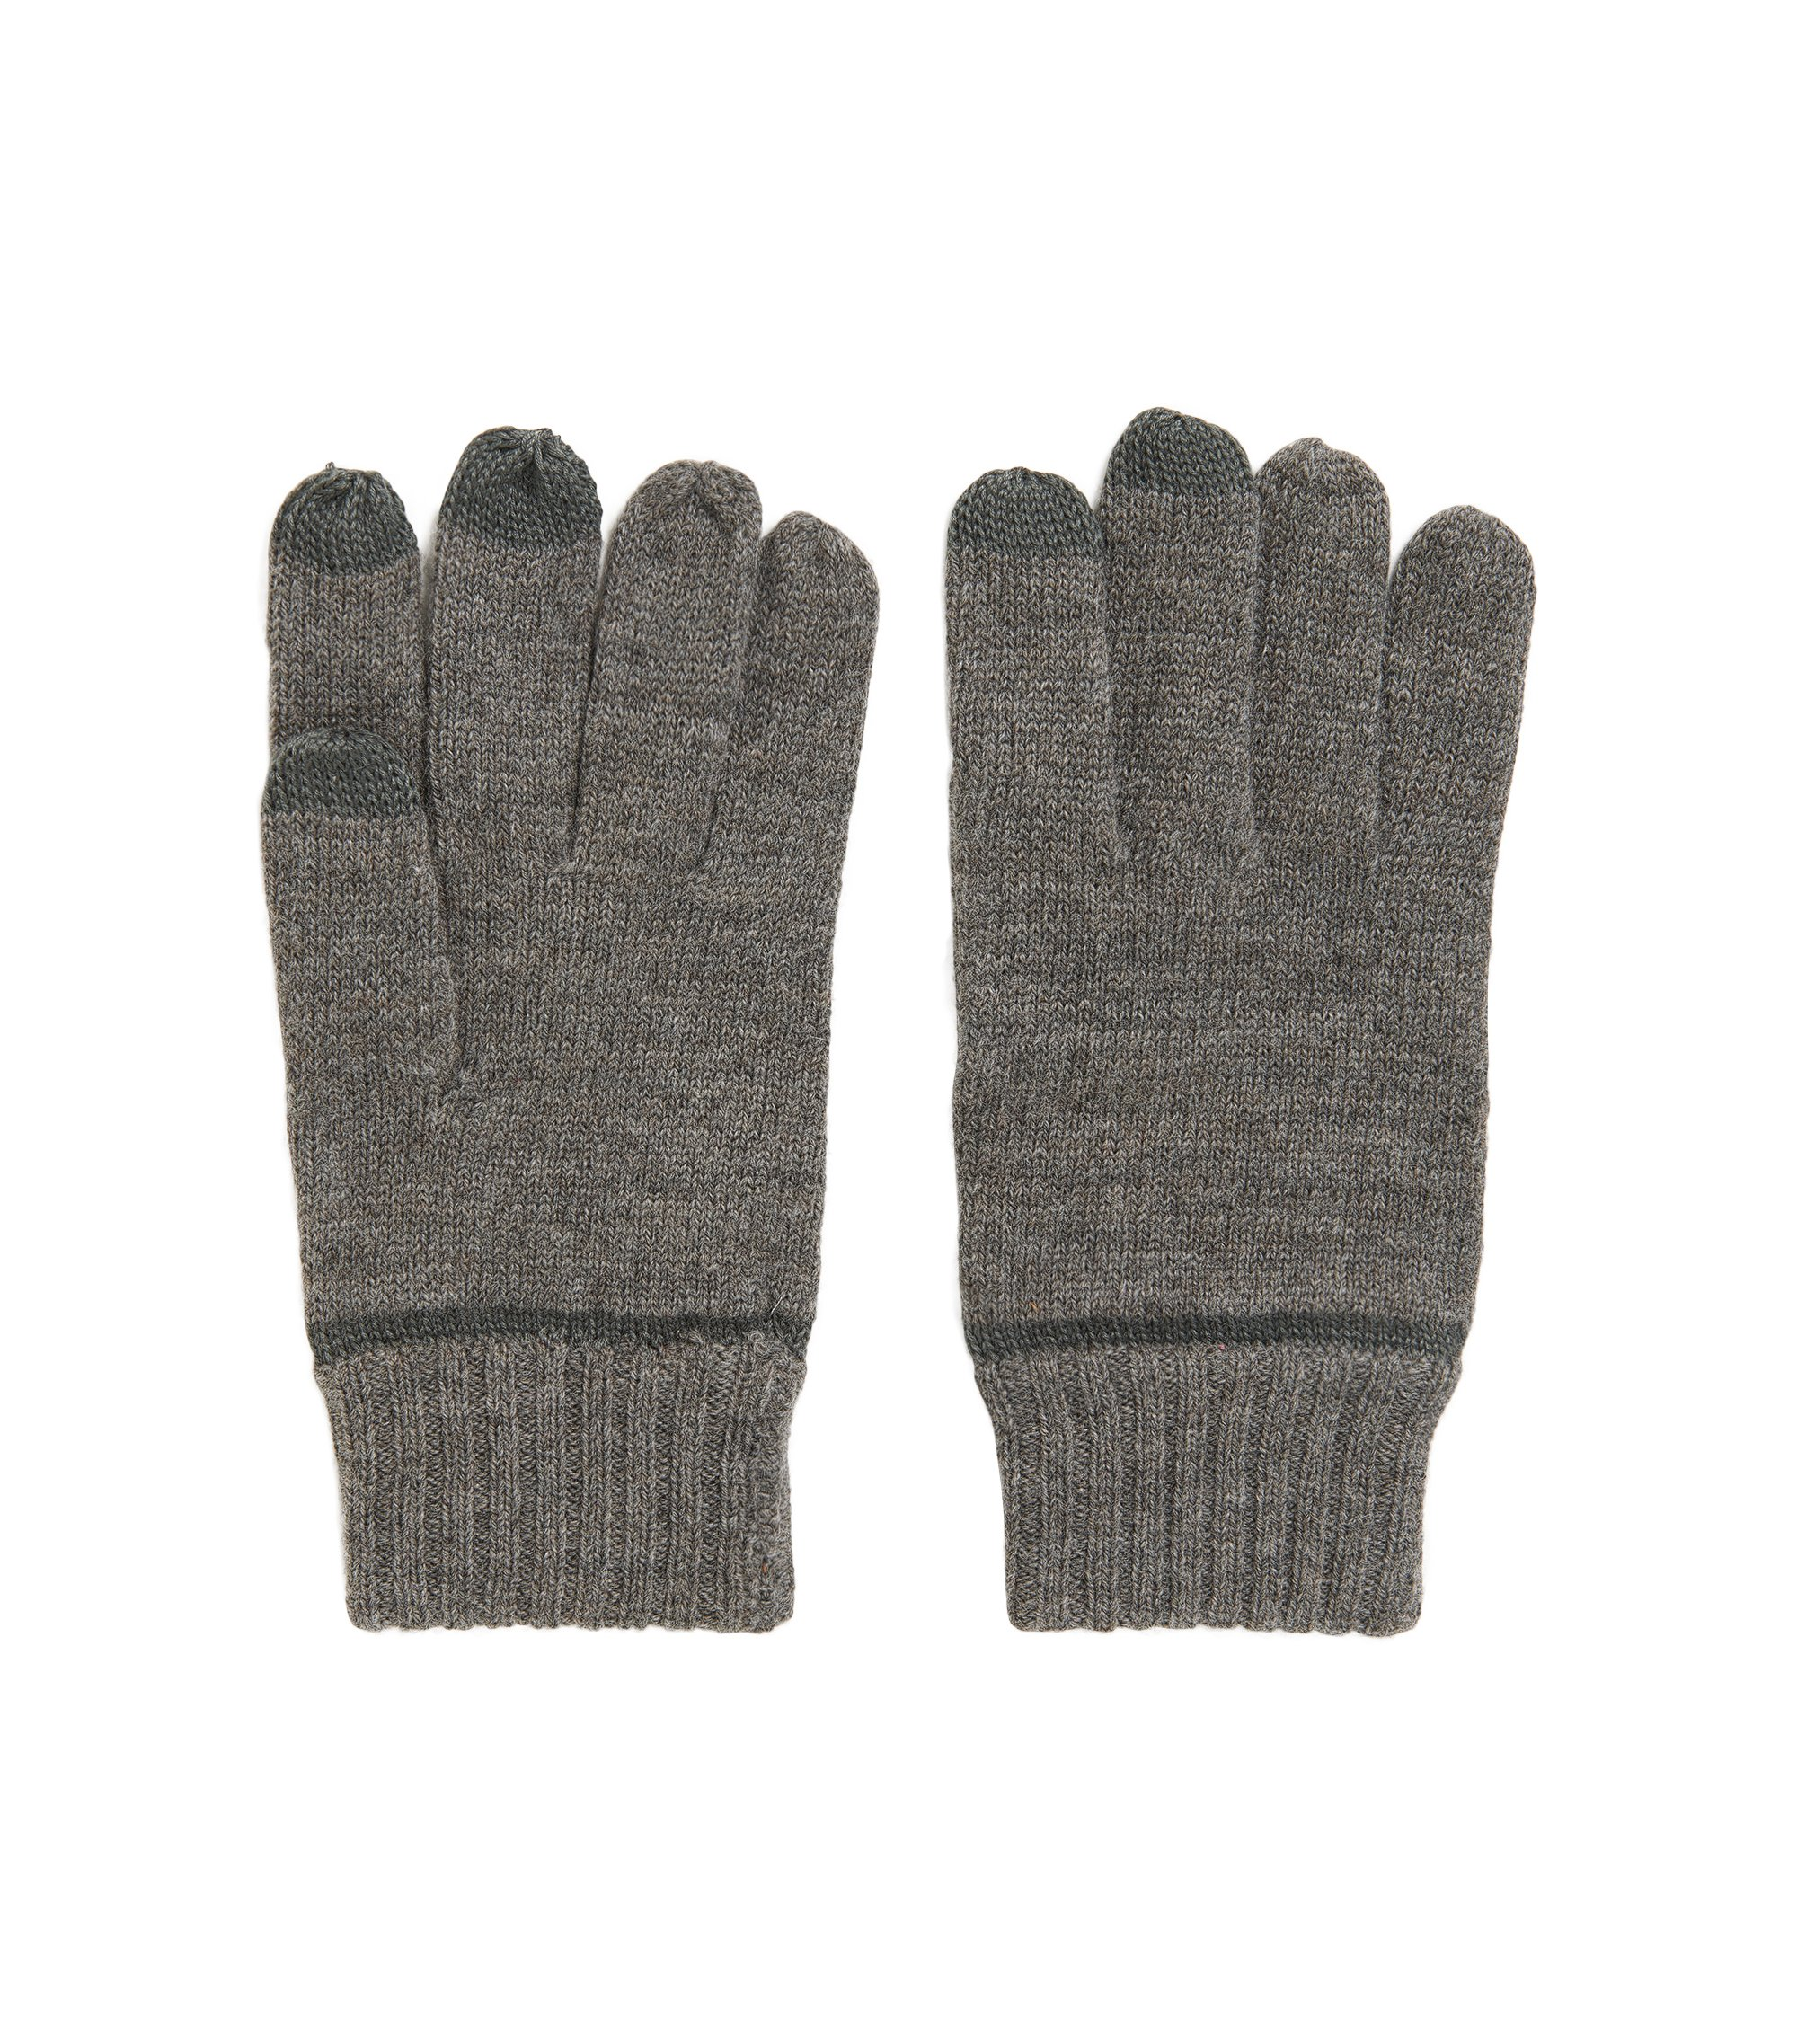 Virgin Wool Blend Tech Gloves | Graas, Light Grey